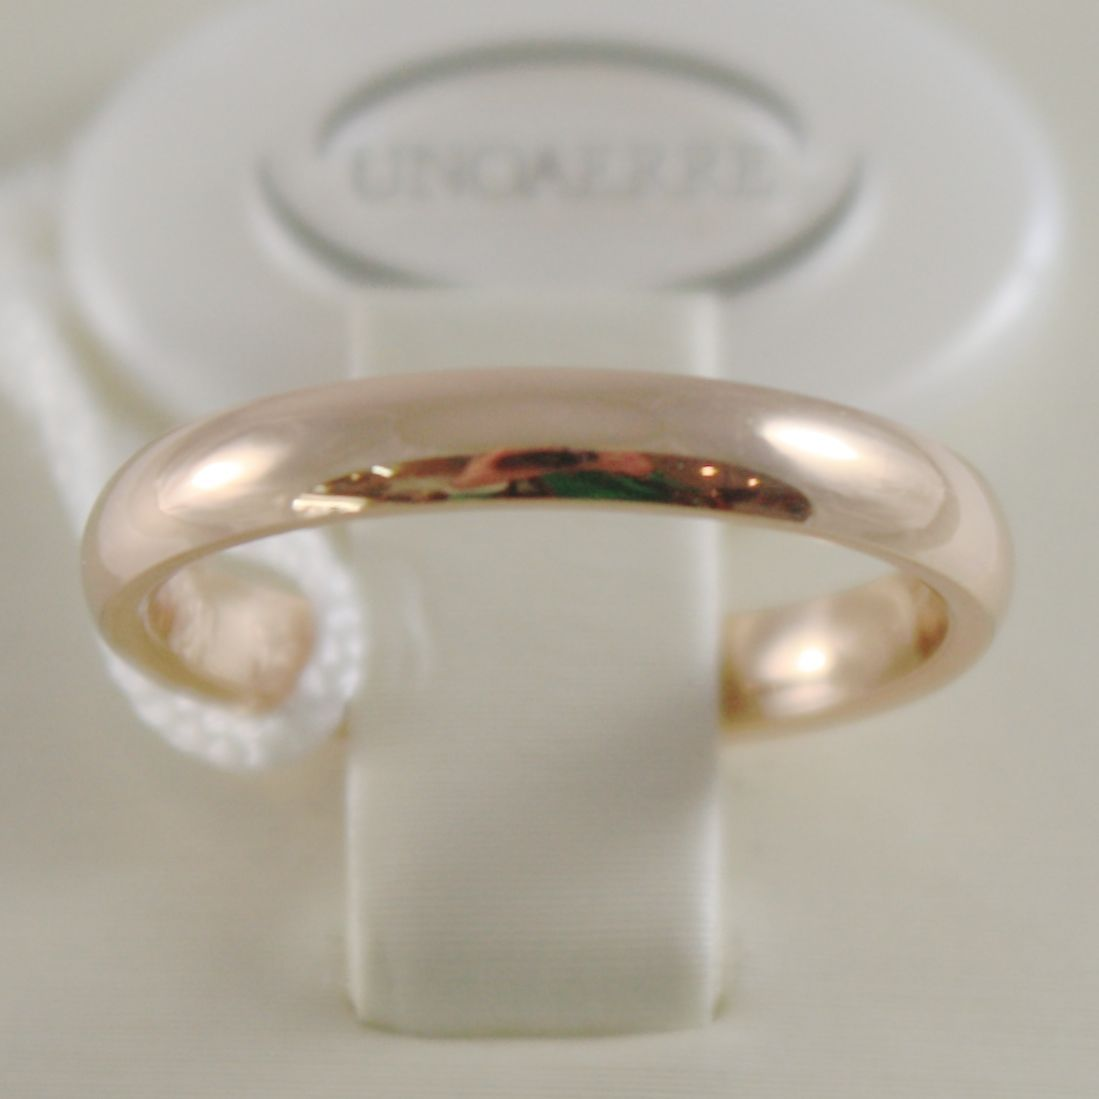 18K YELLOW GOLD WEDDING BAND UNOAERRE COMFORT RING MARRIAGE 3 MM, MADE IN ITALY